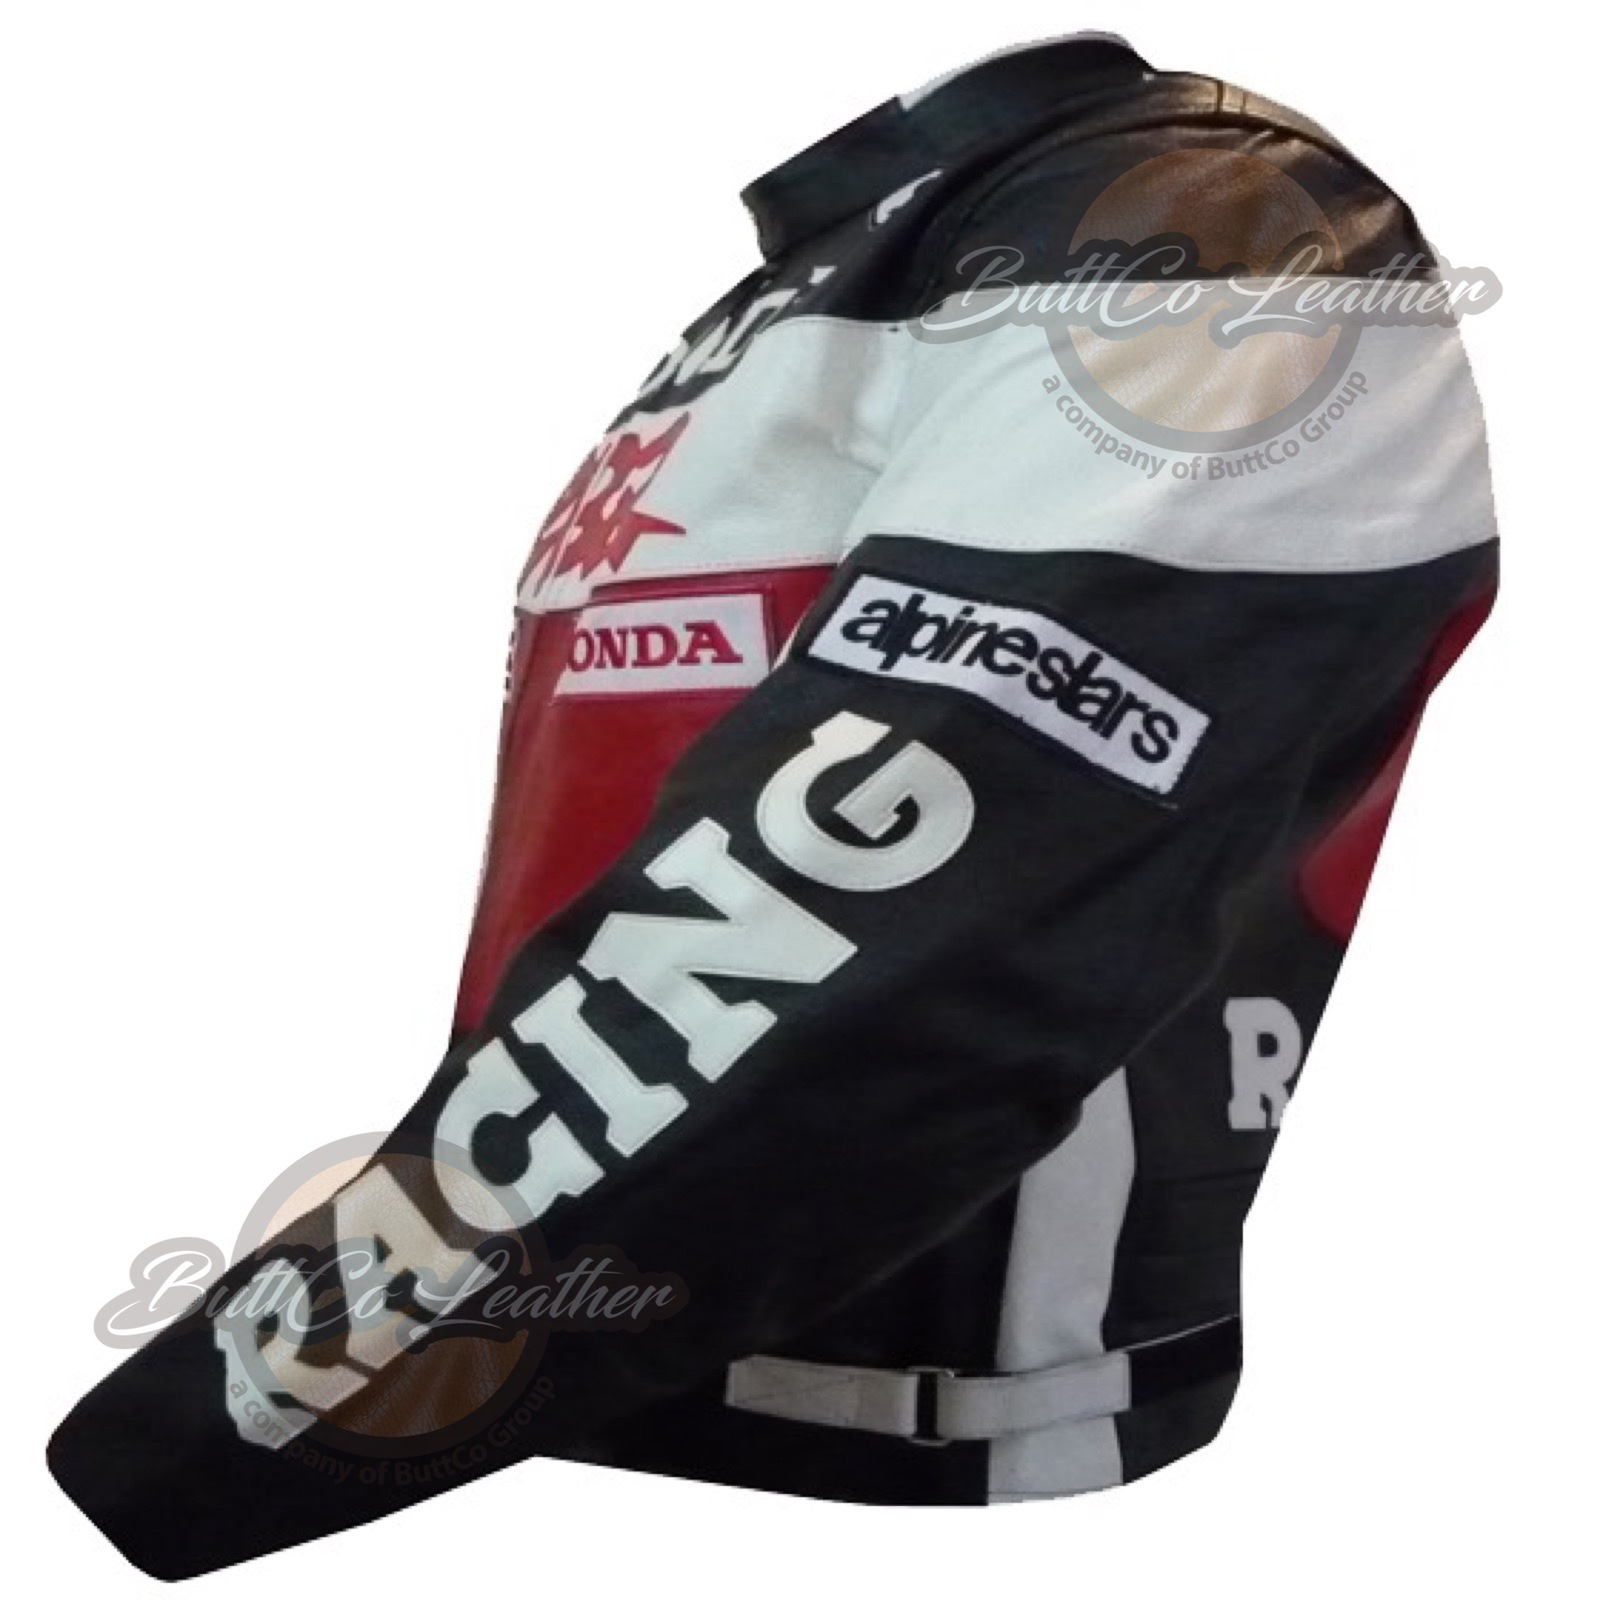 Honda CBR Motorcycle Racing GearHonda CBR Motorcycle Racing Gear side 4